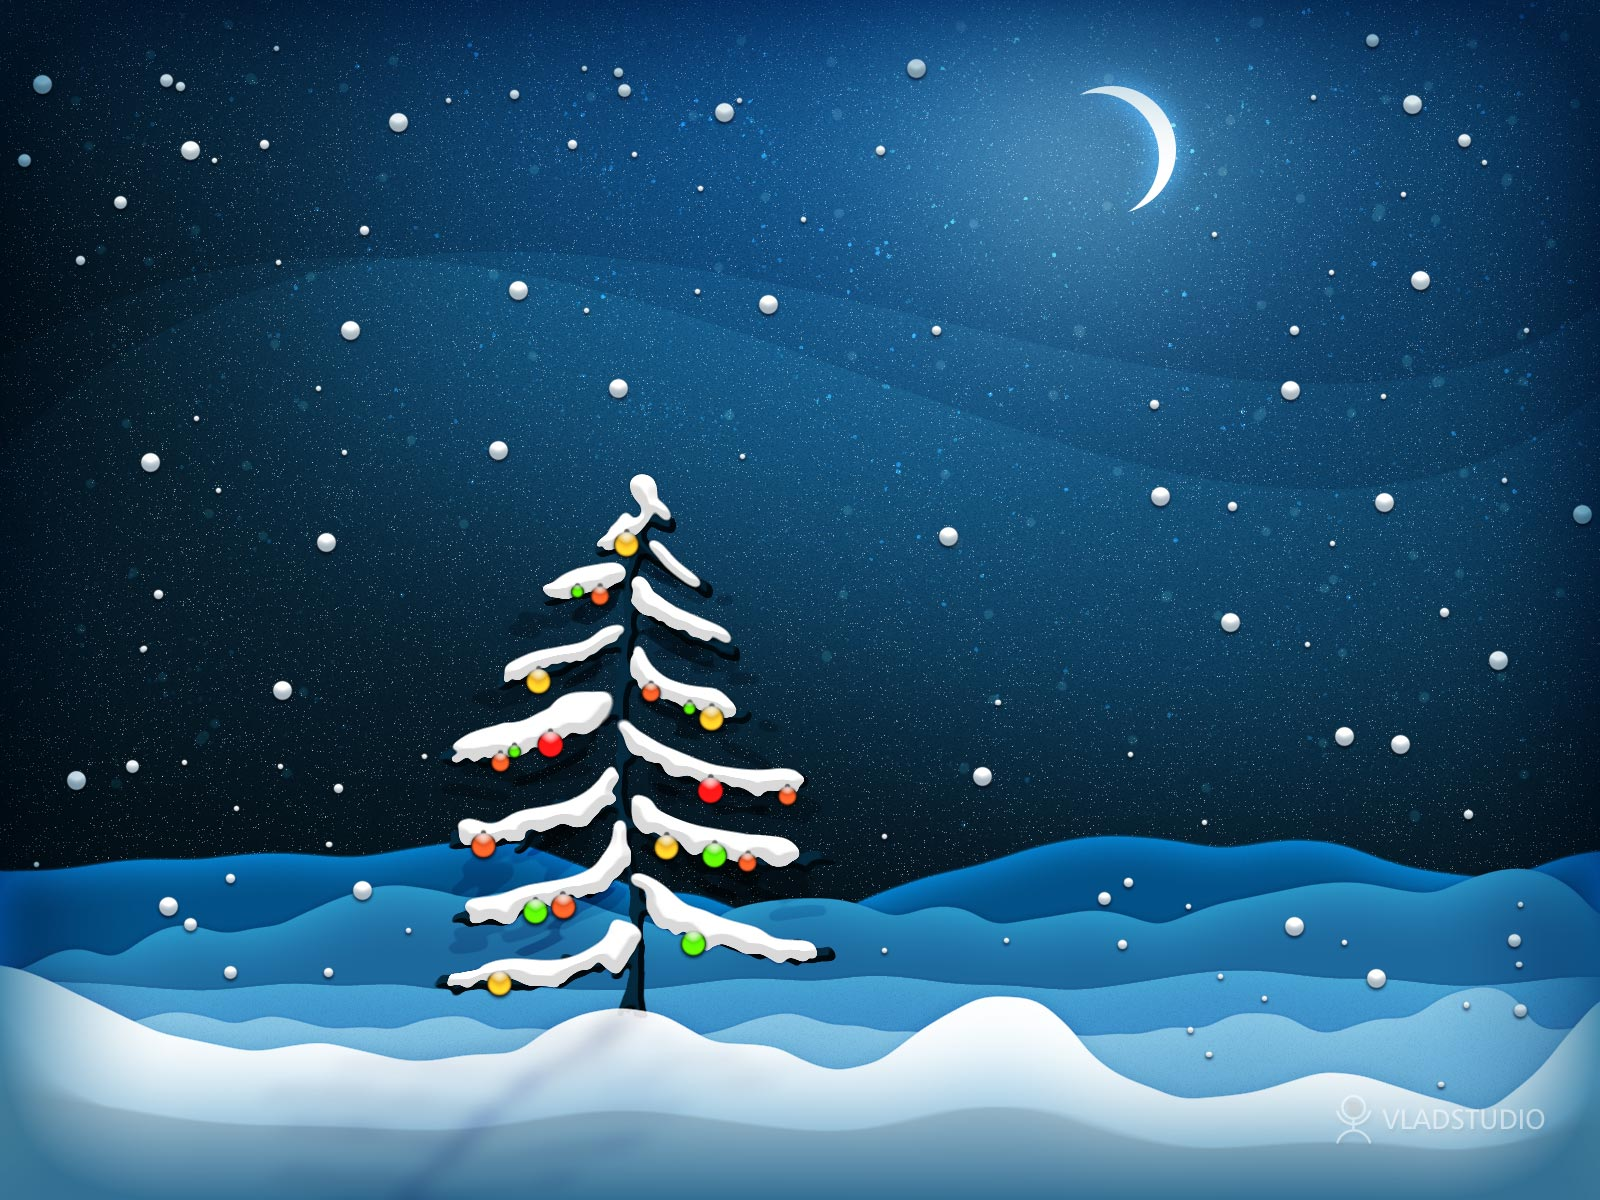 Eddmedia HD Christmas Wallpapers For Win8 Top My 3d Free Wallpaper Desktop